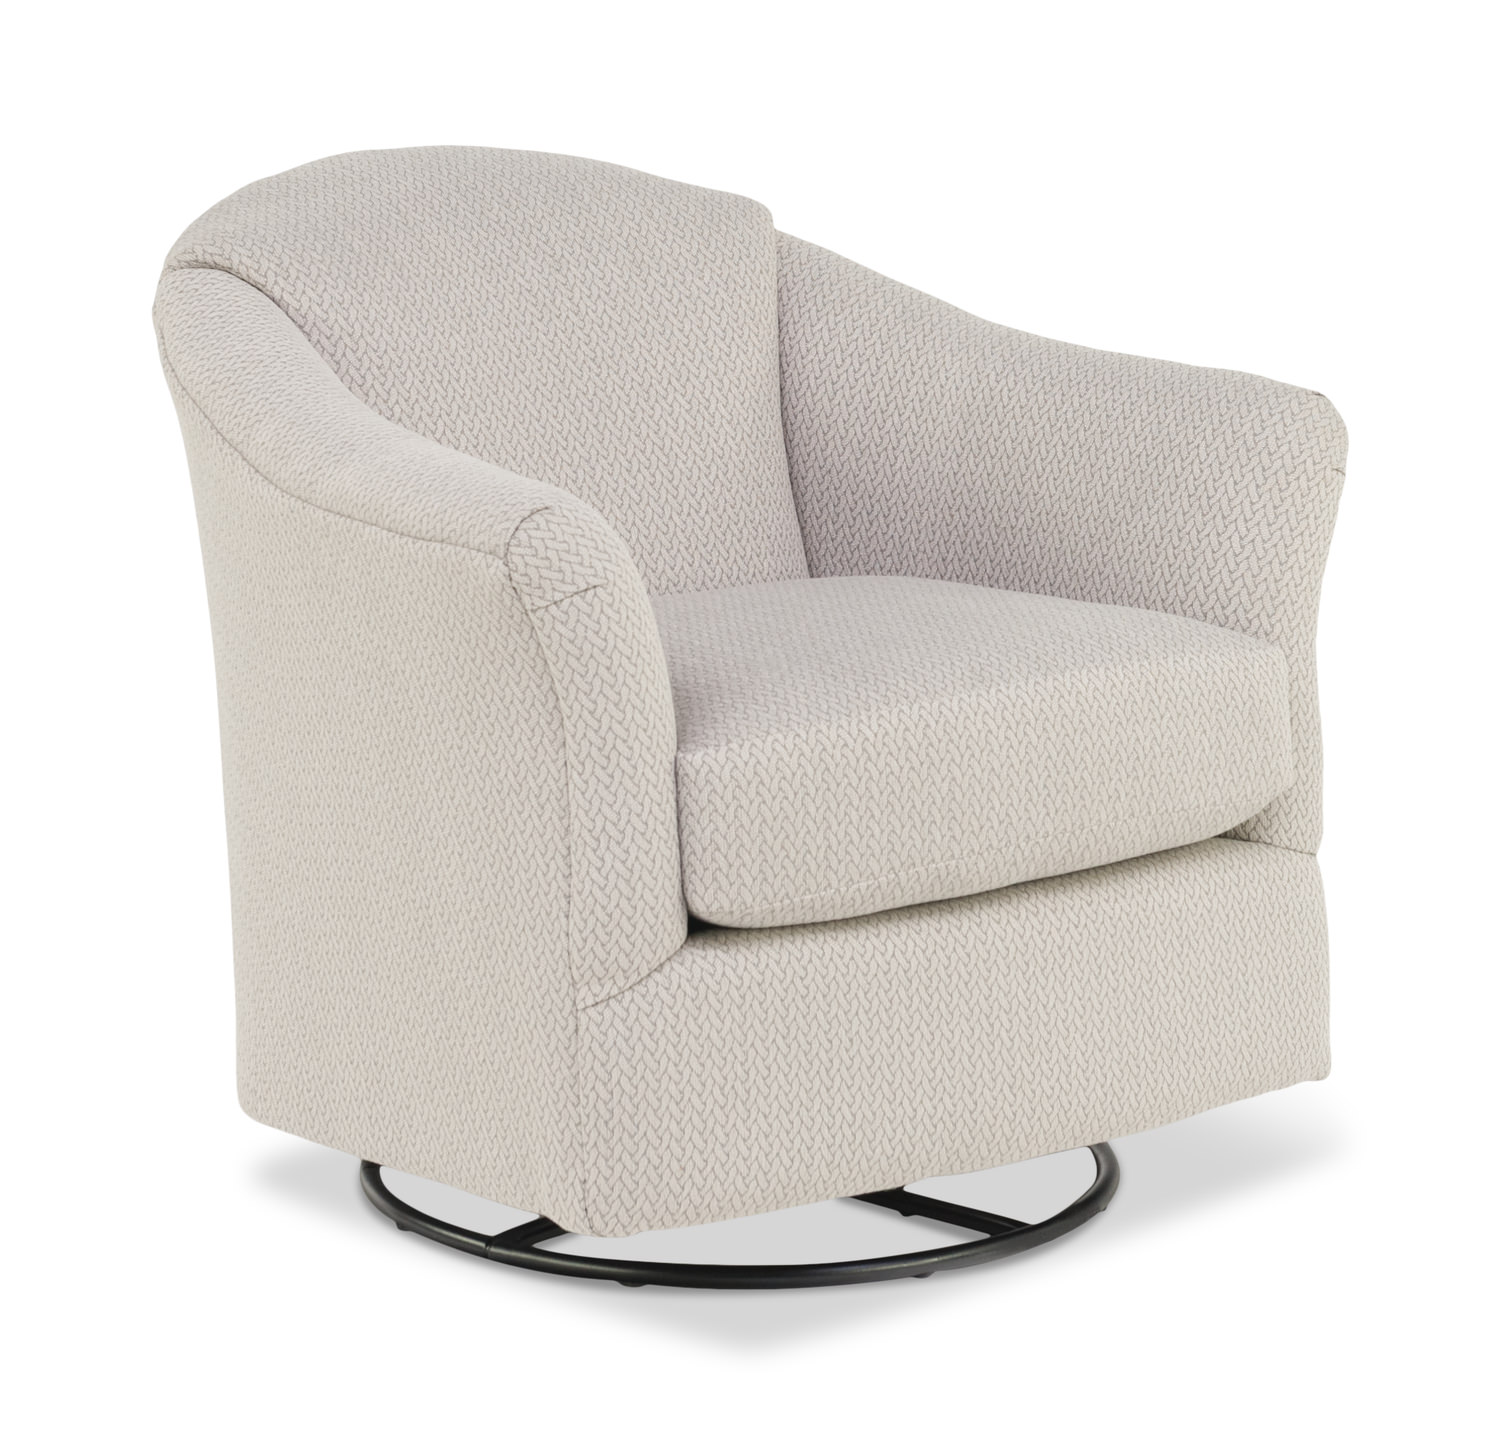 Darby Swivel Glider Hom Furniture